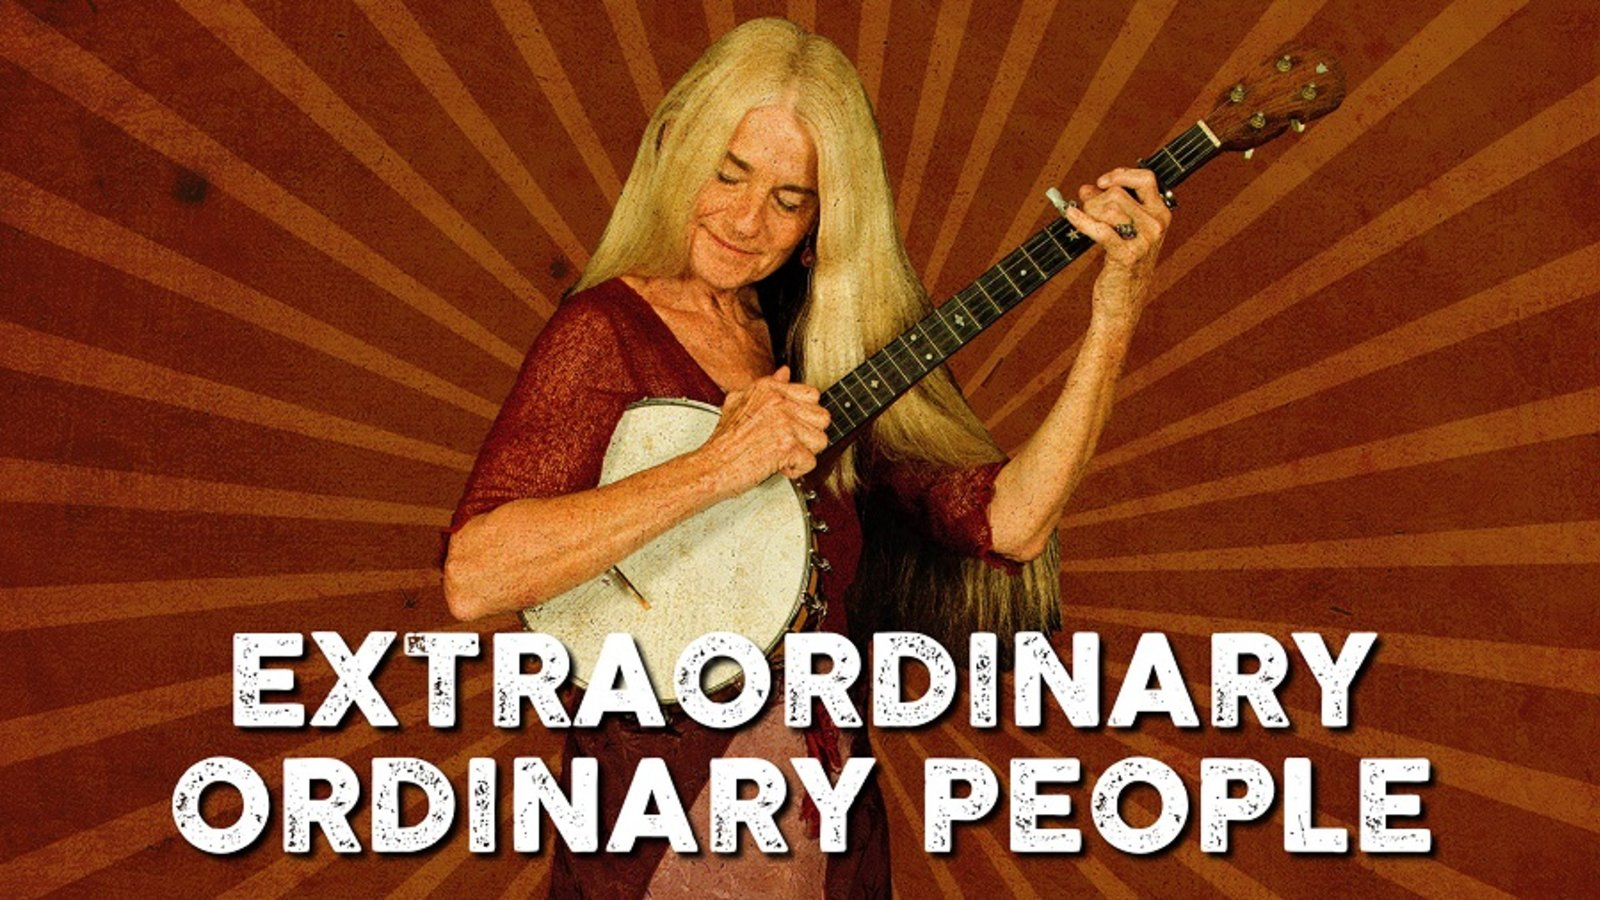 Extraordinary Ordinary People - Folk and Traditional Arts in America